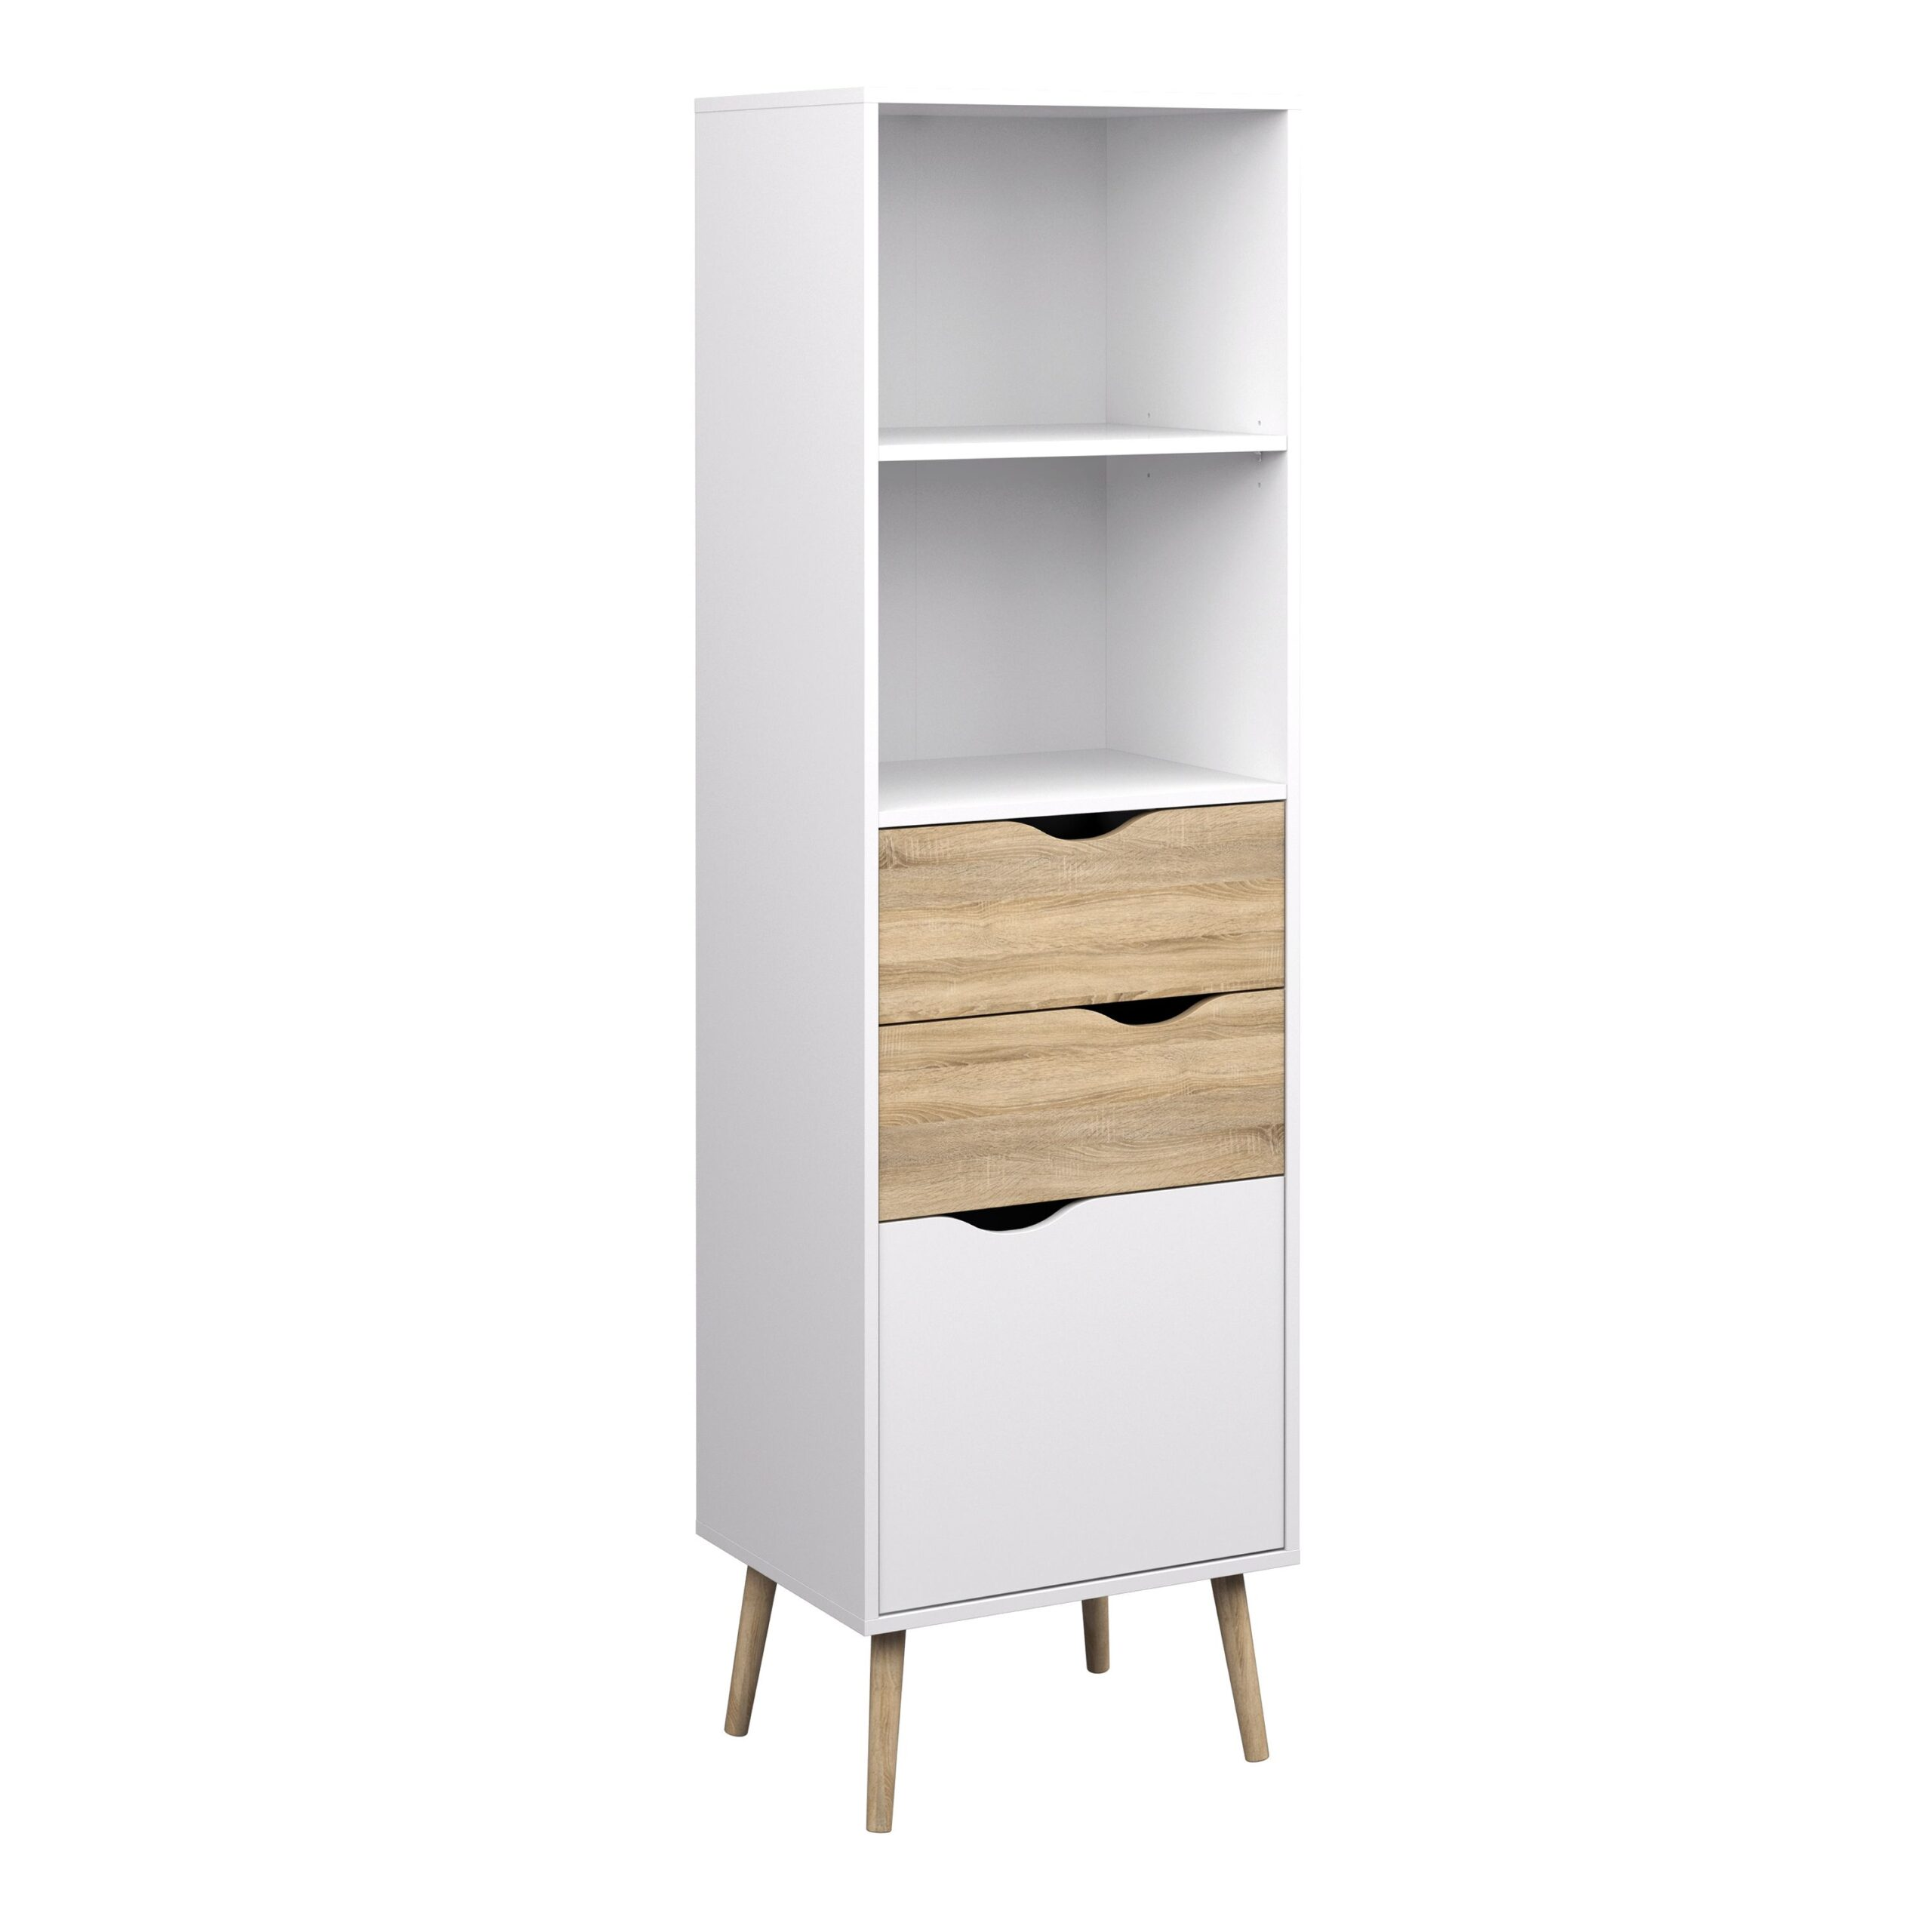 Solo Bookcase 2 Drawers 1 Door in White and Oak